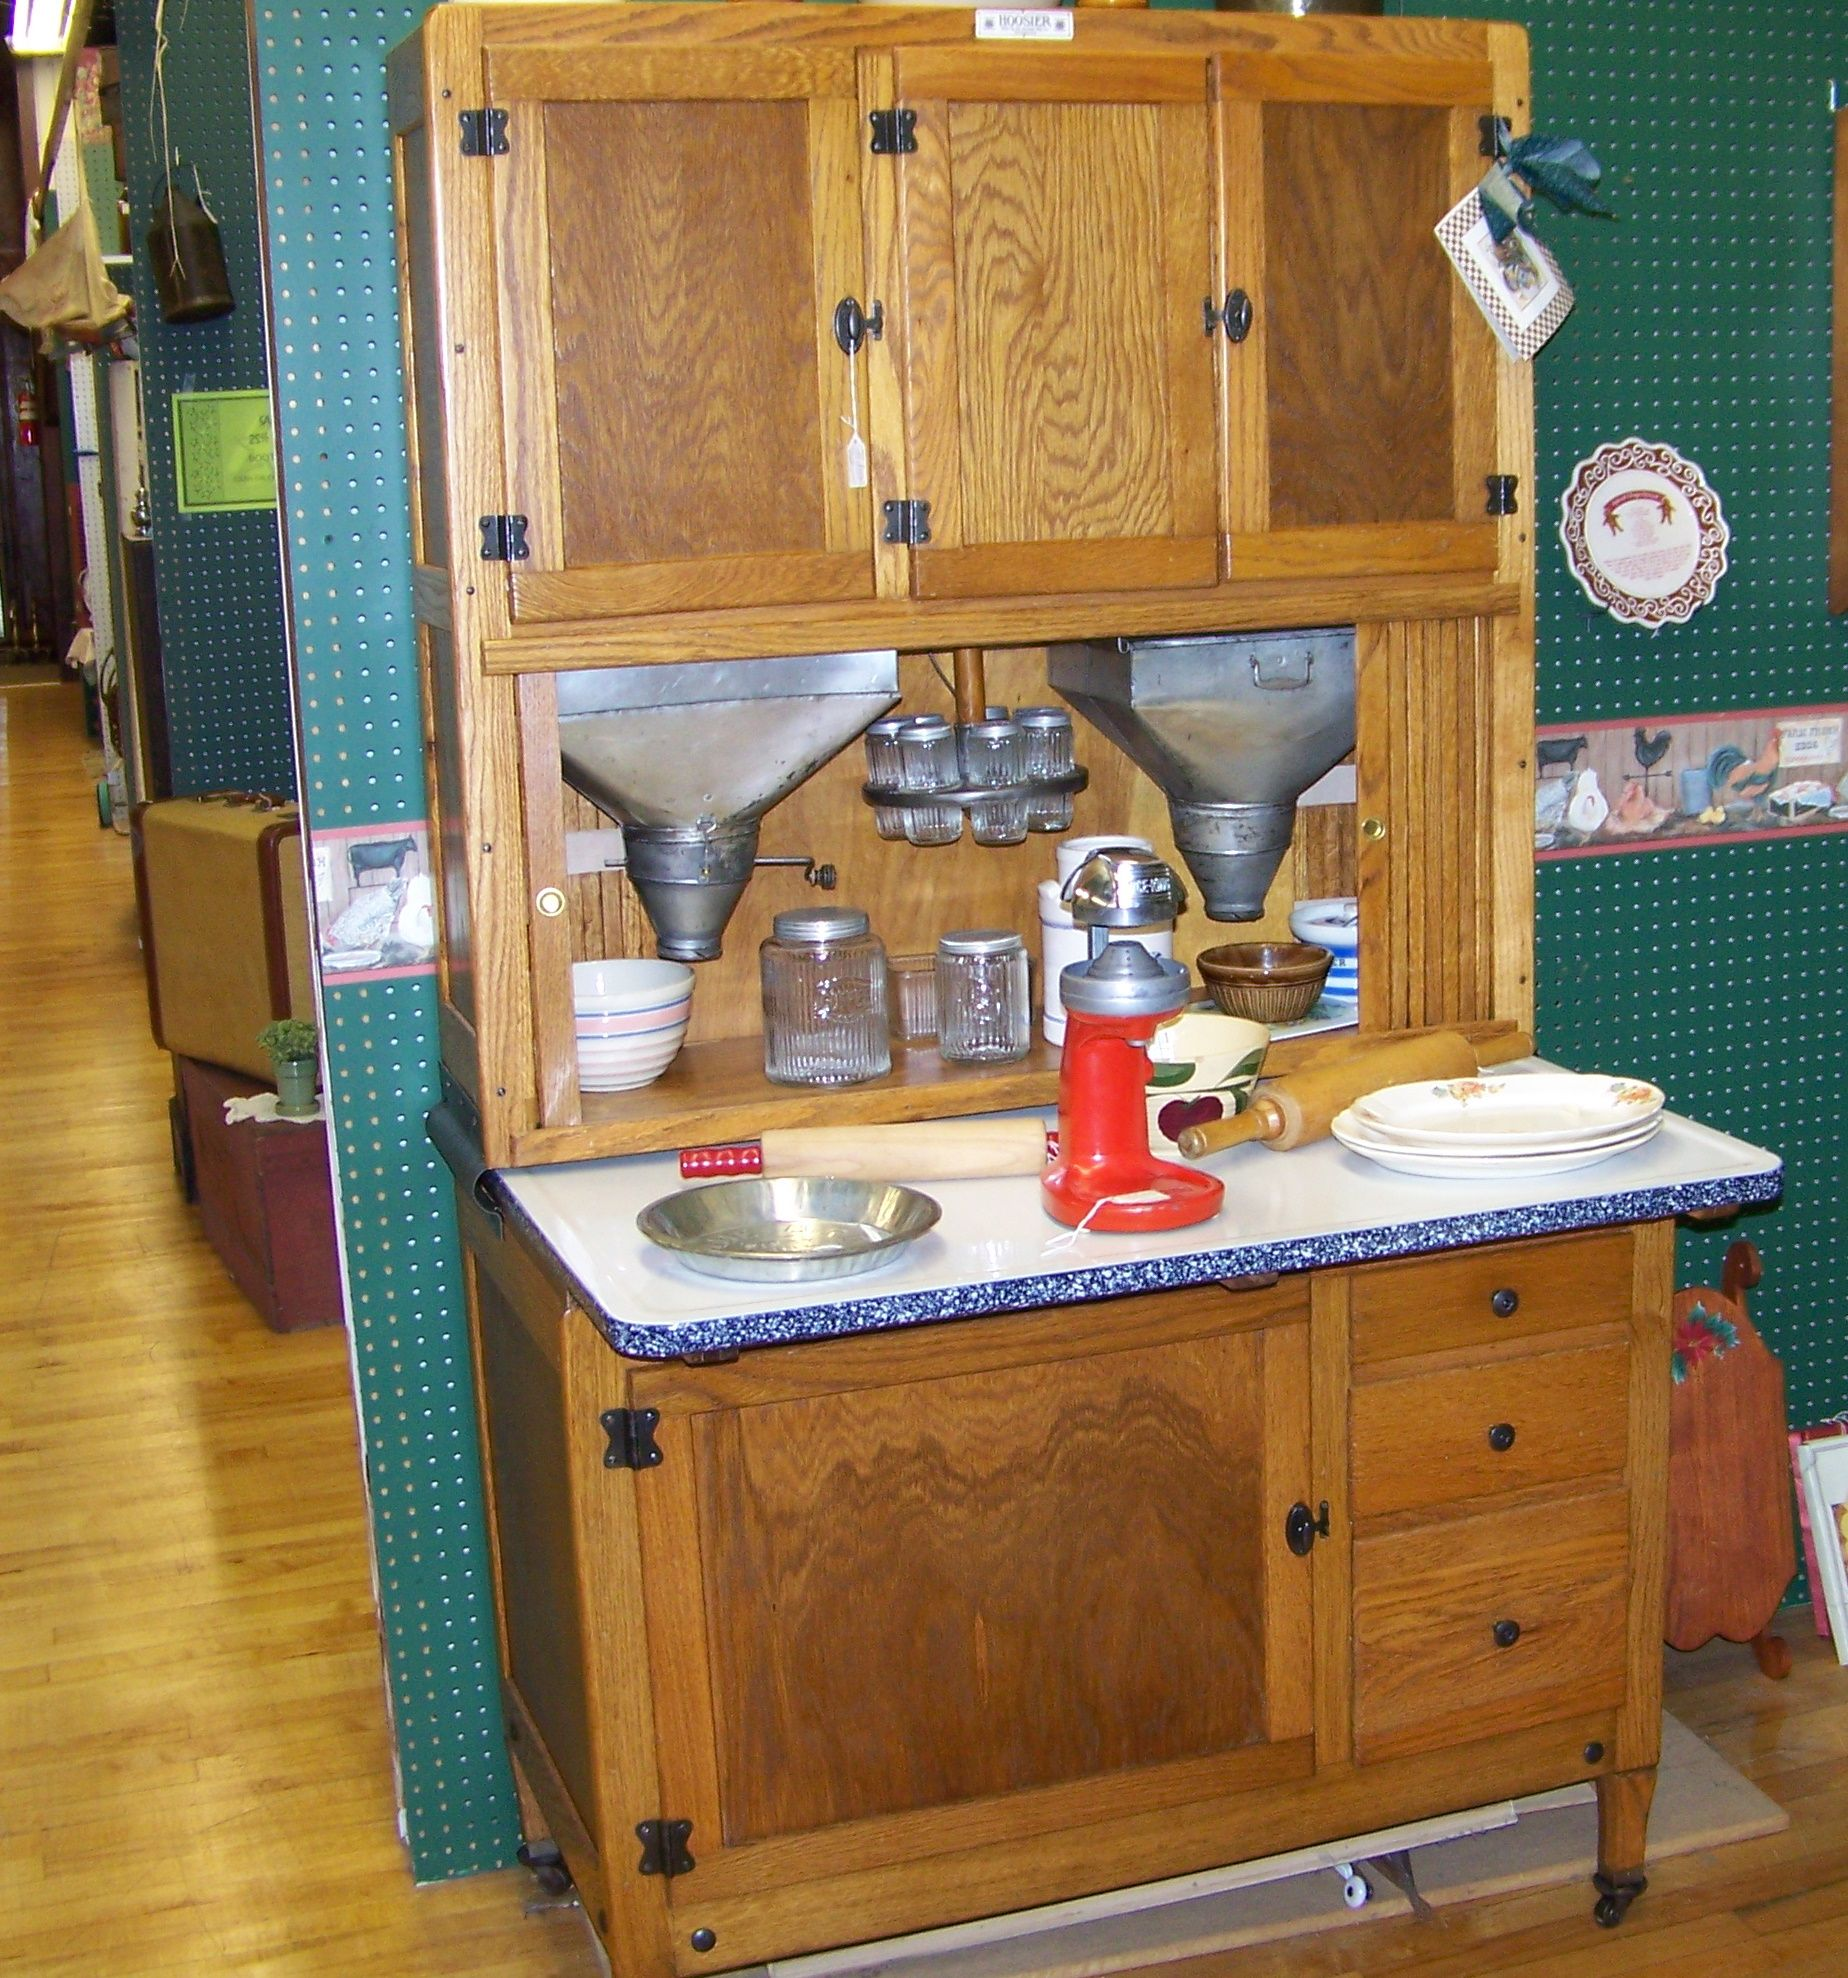 Restored Sellers Brand 36 Oak Kitchen Cabinet This Size Cabinet Size Is Rare And Hard To Find Kitchen Cabinet Drawers Hoosier Cabinets Glass Drawer Pulls